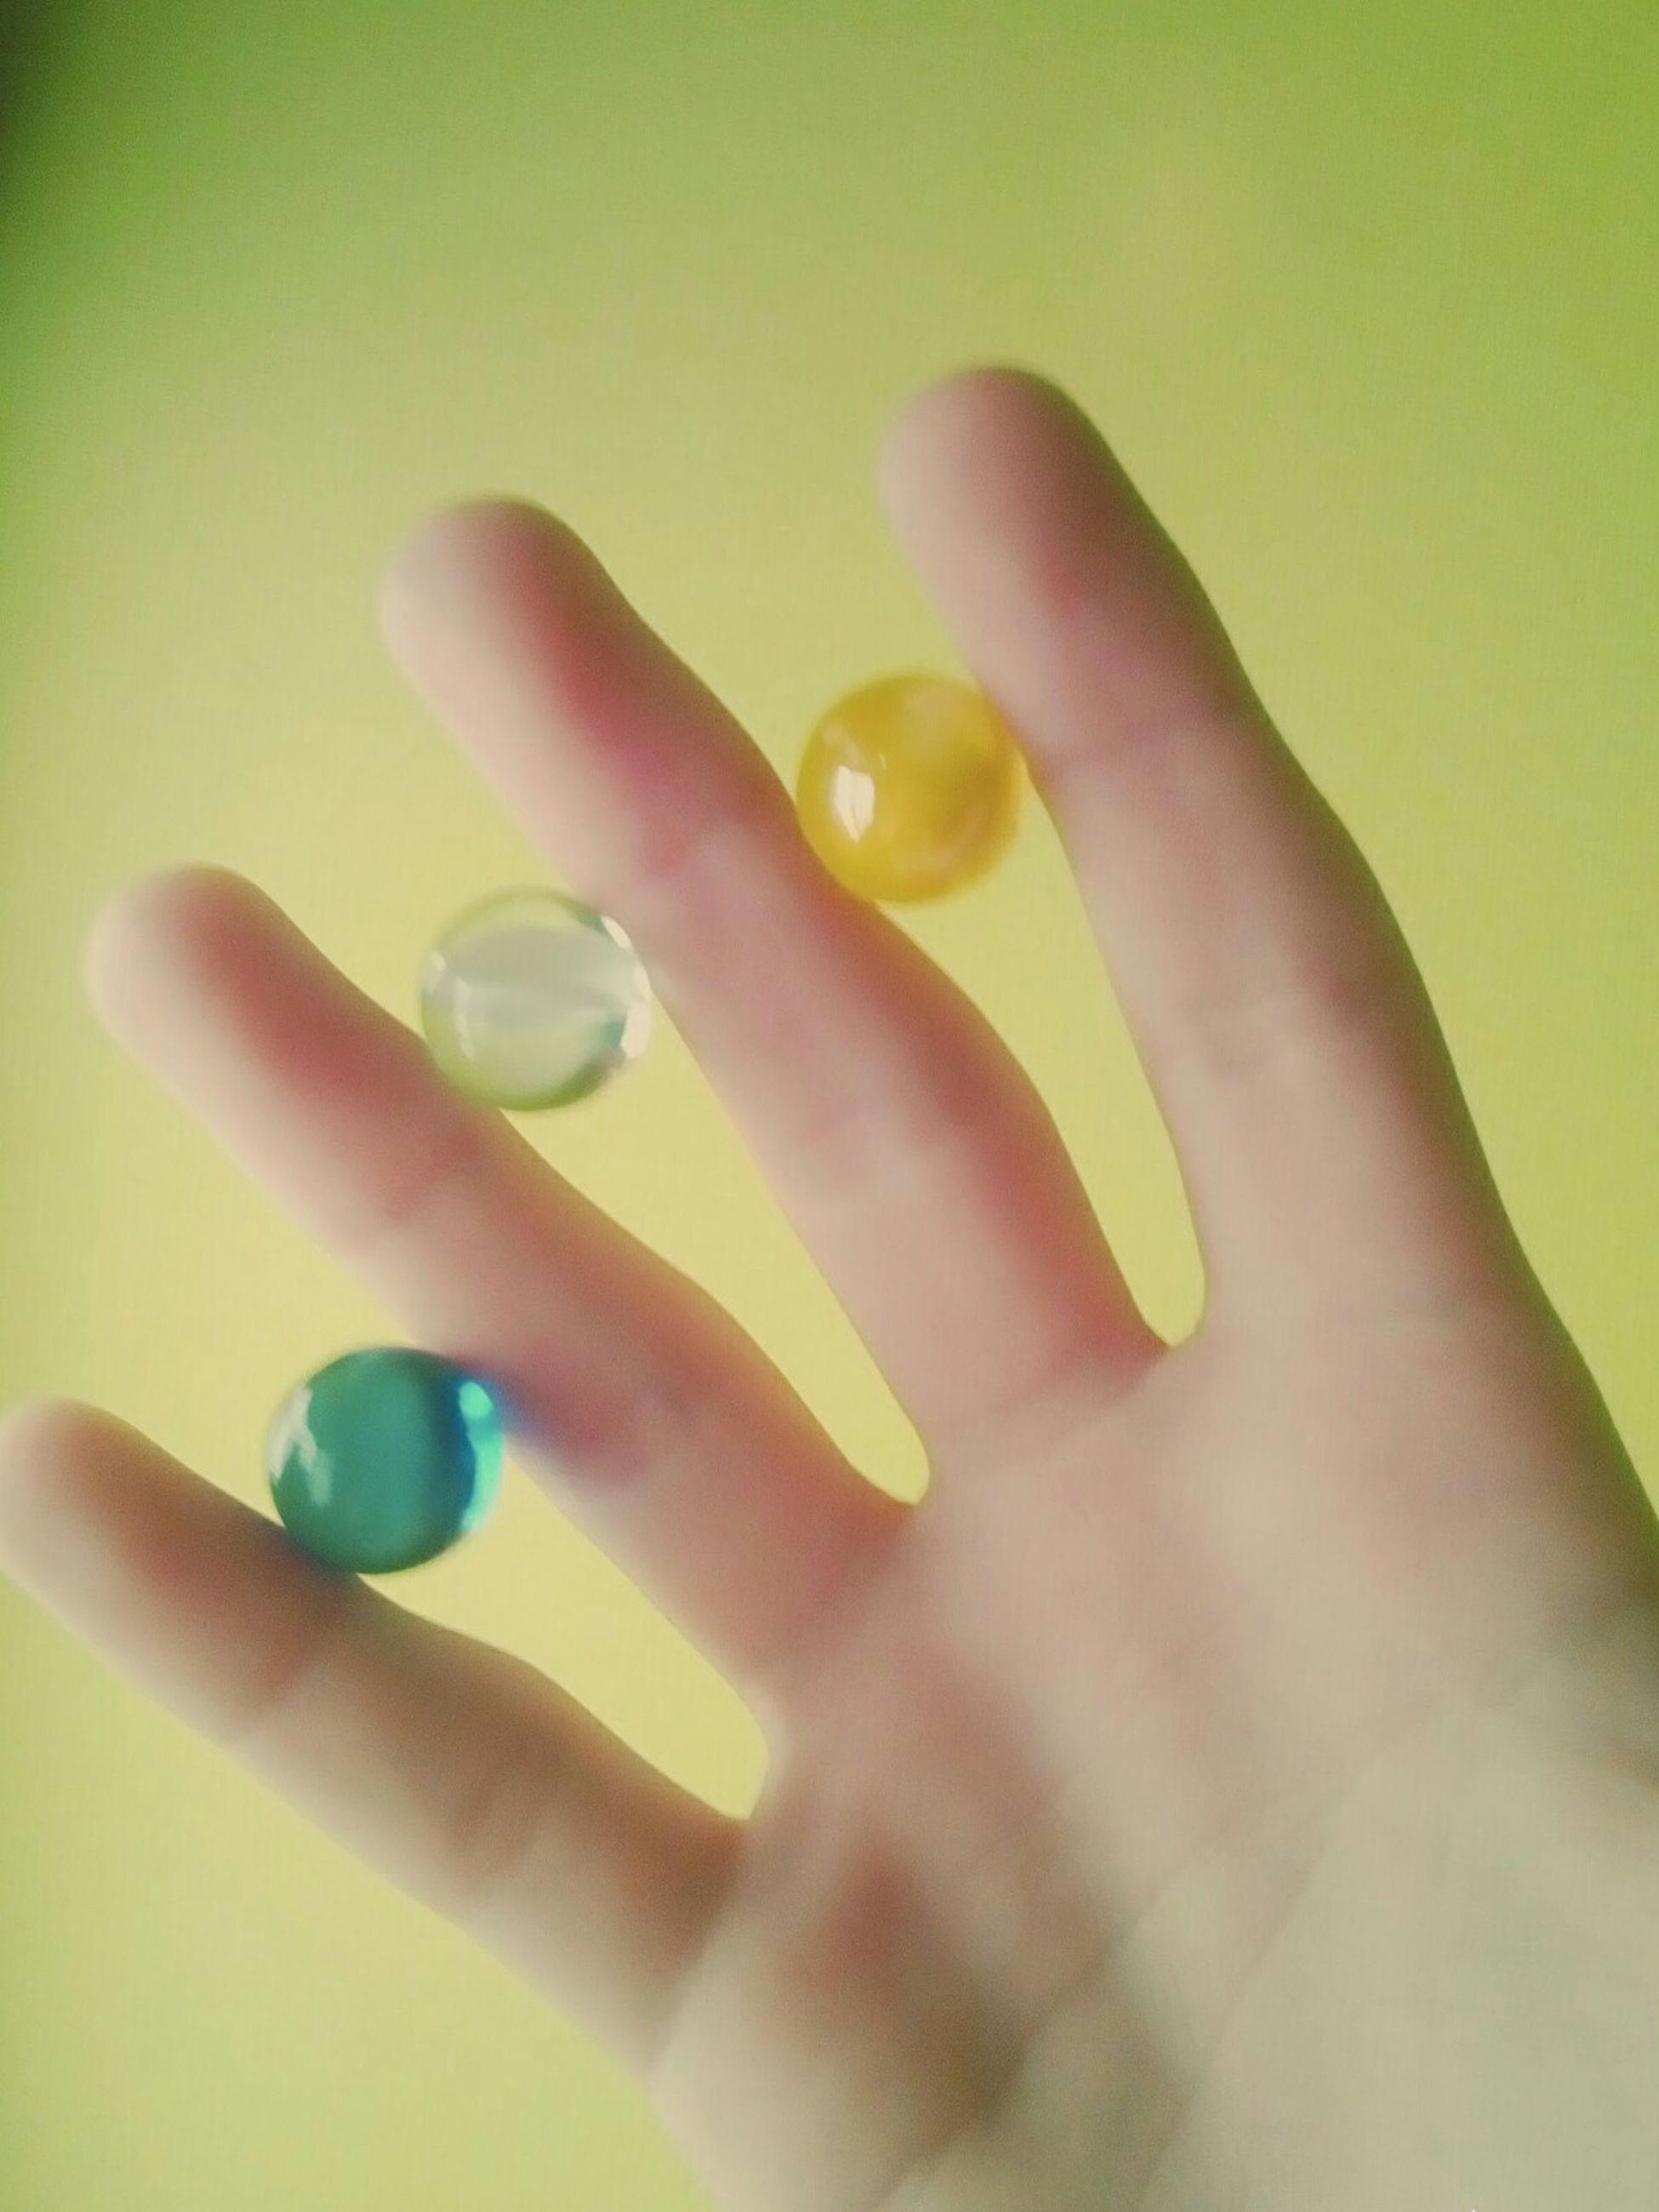 indoors, person, lifestyles, holding, part of, leisure activity, childhood, human finger, close-up, cropped, yellow, high angle view, toy, home interior, unrecognizable person, nail polish